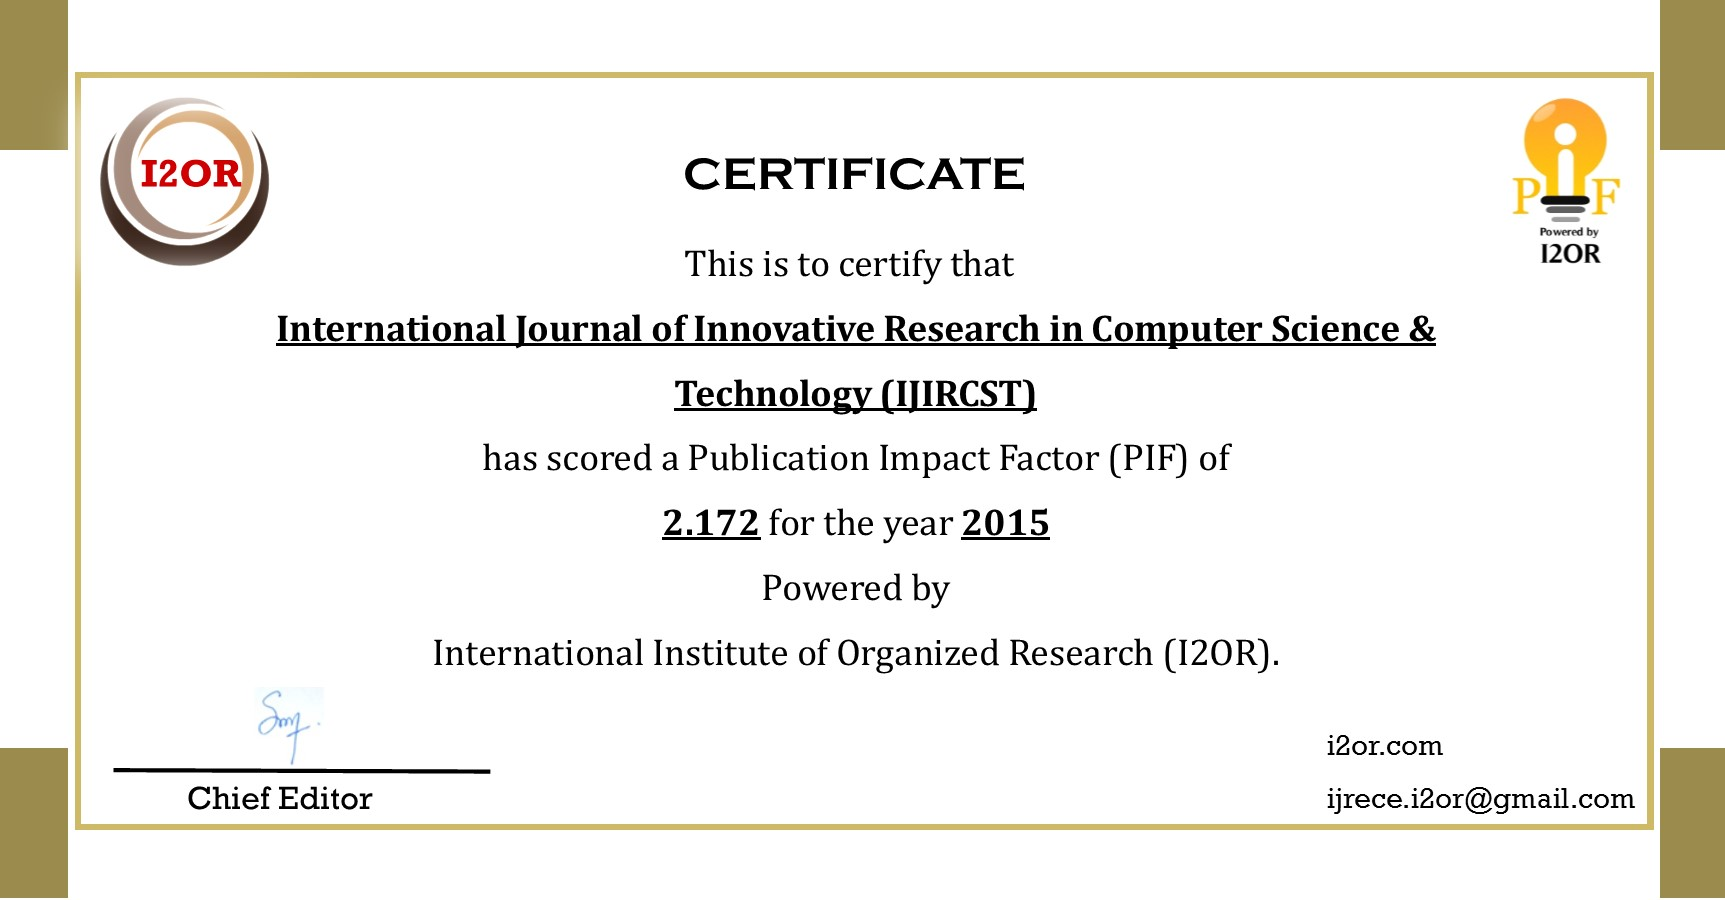 018 Research Paper Ijircst Impactfactor How To Publish In Computer Fearsome A Science Full